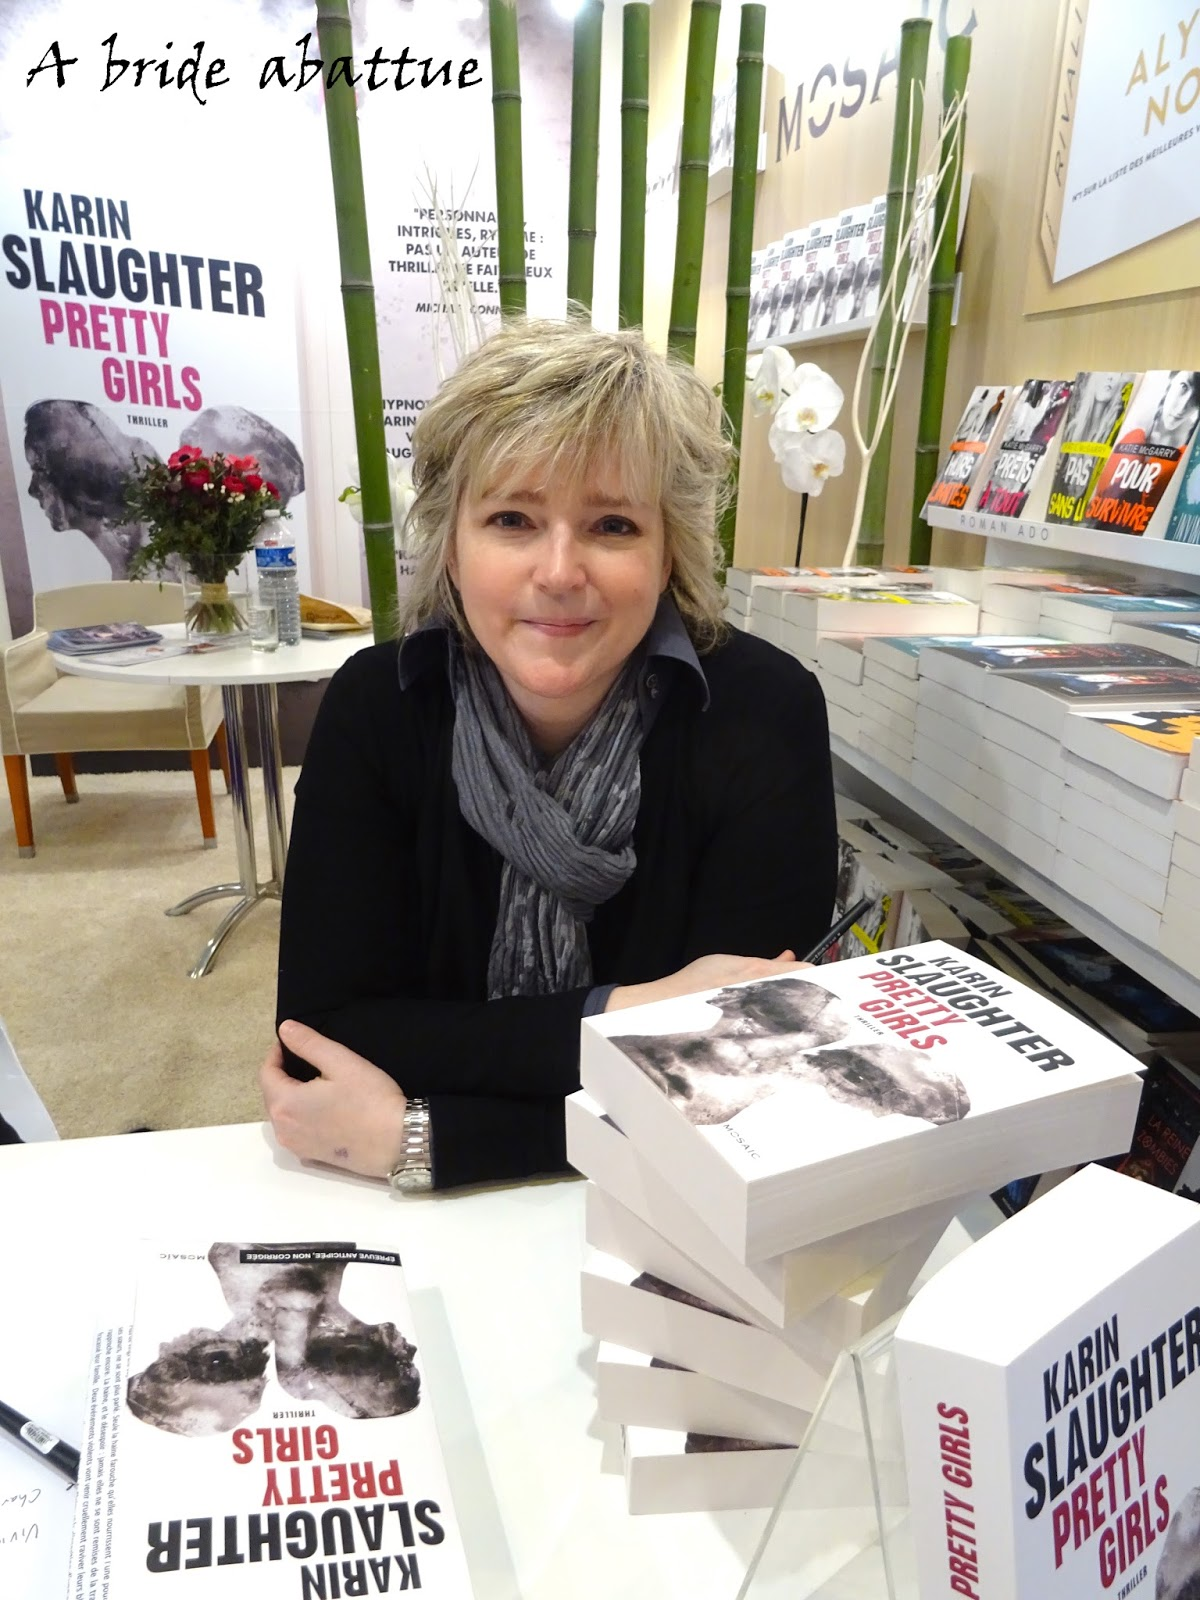 slaughter girls Karin slaughter is an american crime writer, whose first novel blindsighted pretty girls (2015) the good daughter (2017) last breath (2017) pieces of her (2018.